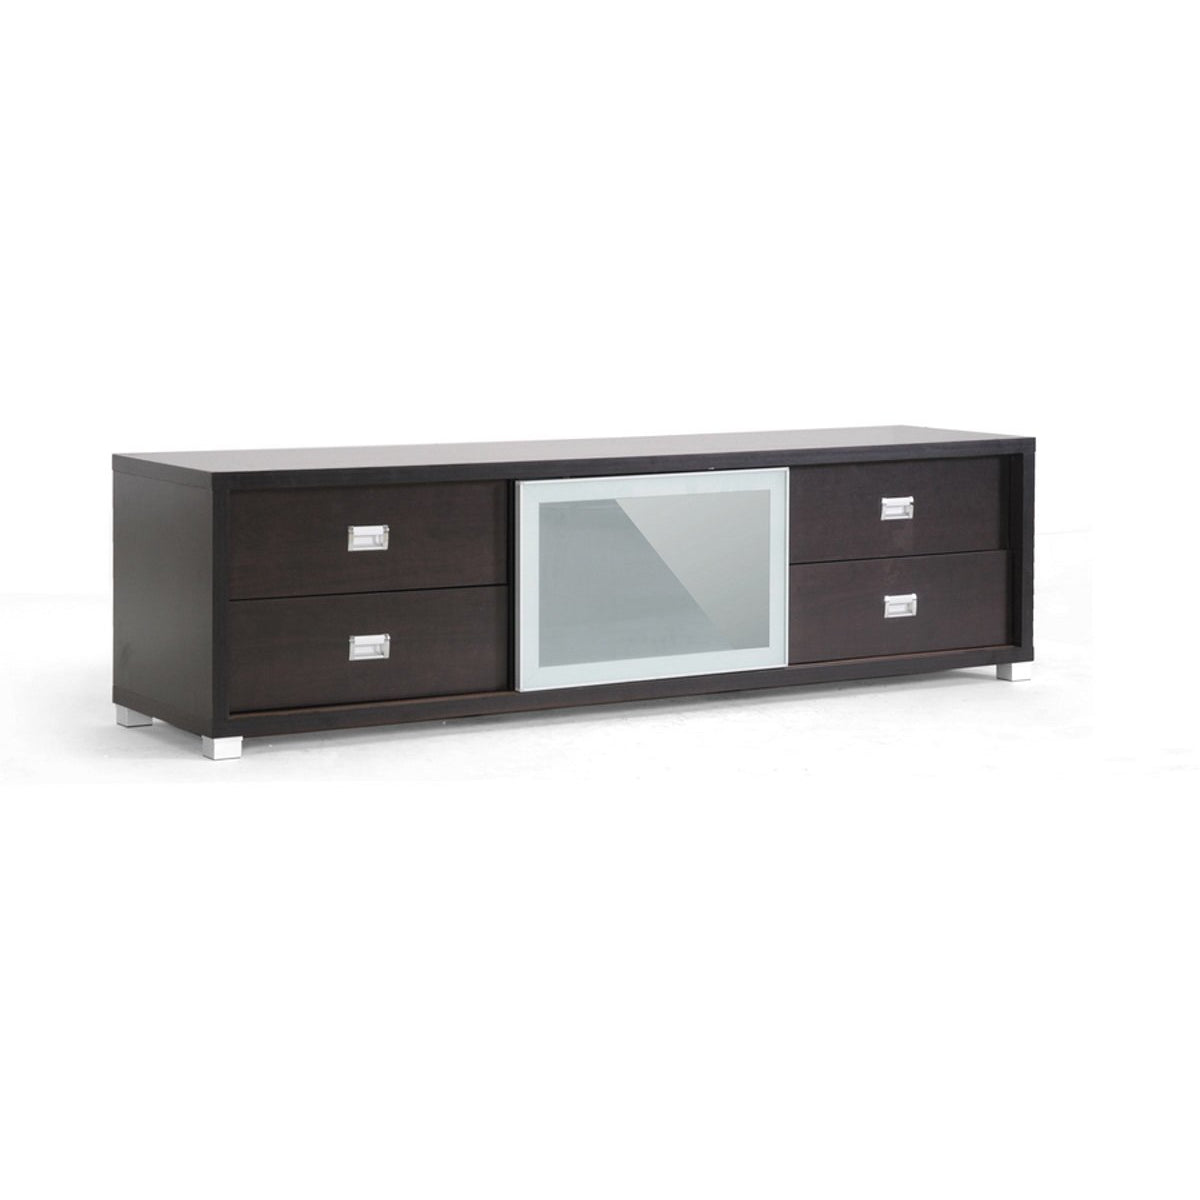 Baxton Studio Botticelli Brown Modern TV Stand with Frosted Glass Door Baxton Studio-TV Stands-Minimal And Modern - 1